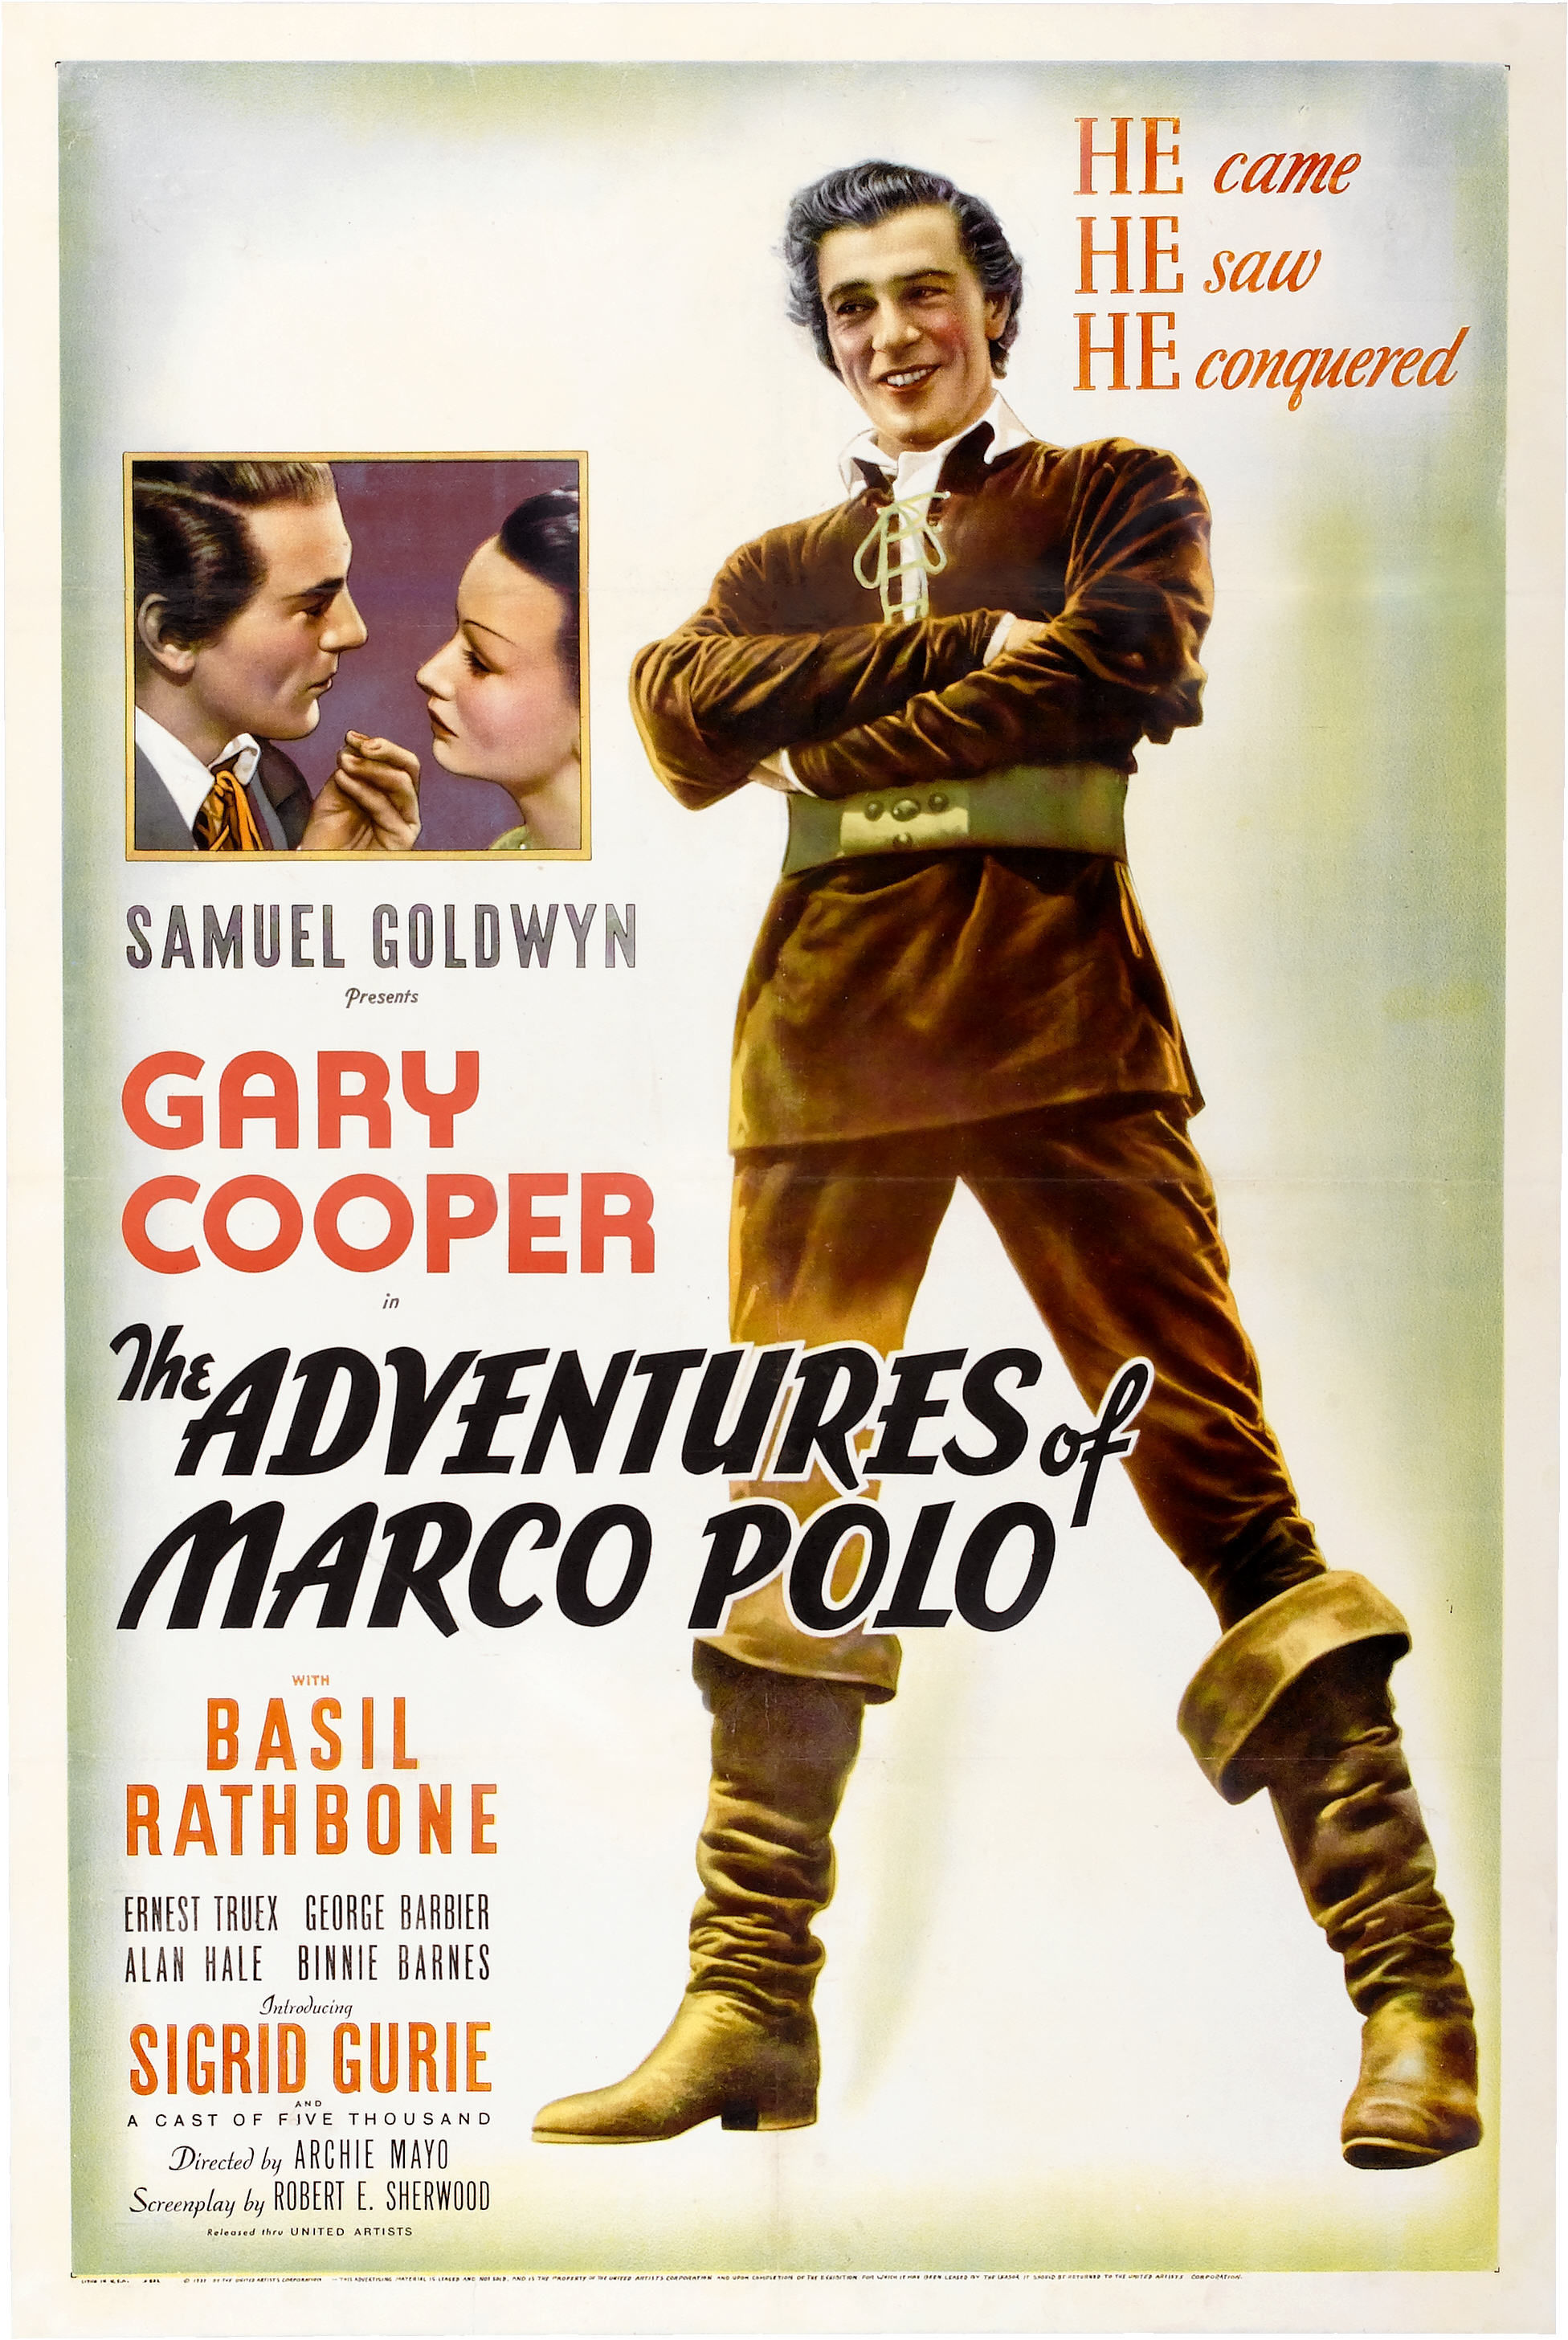 - The Venetian traveler (Gary Cooper) meets Kublai Khan and foils a plotter (Basil Rathbone) with fireworks in medieval China.The Adventures of Marco Polo (1938) Directed by Archie Mayo. 104mins.Gary Cooper - Marco PoloAlso starring Basil Rathbone, Sigrid Gurie, Binnie Barnes, Alan Hale, H.B. Warner and Lana Turner.Gary Cooper's first big flop, the movie was expensive but failed to make a profit for the studio.17 year old Lana Turner complained that they shaved her eyebrows to try to make her look Chinese1938 1 h 44 min